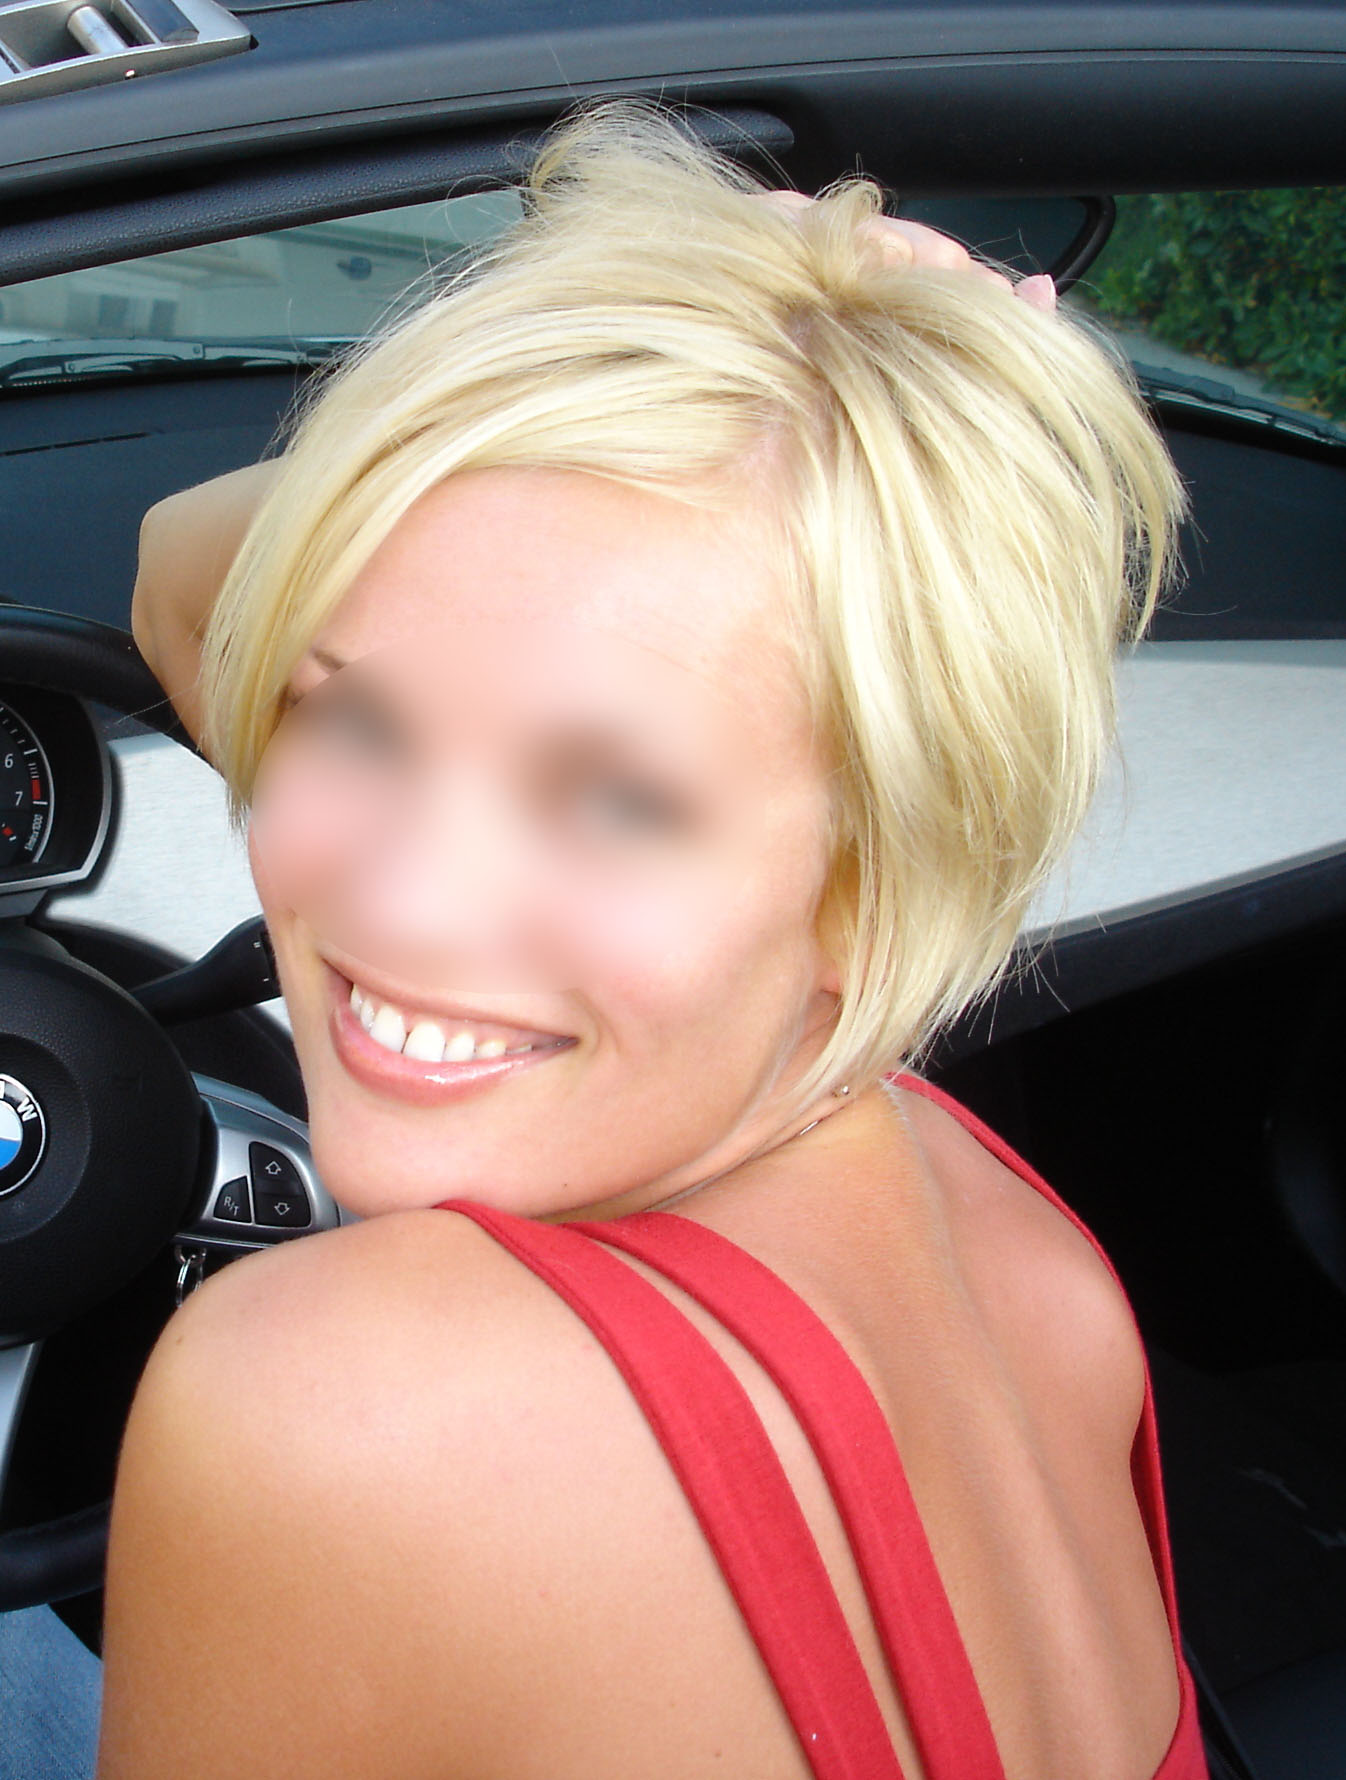 far l amore video escort massaggiatrici